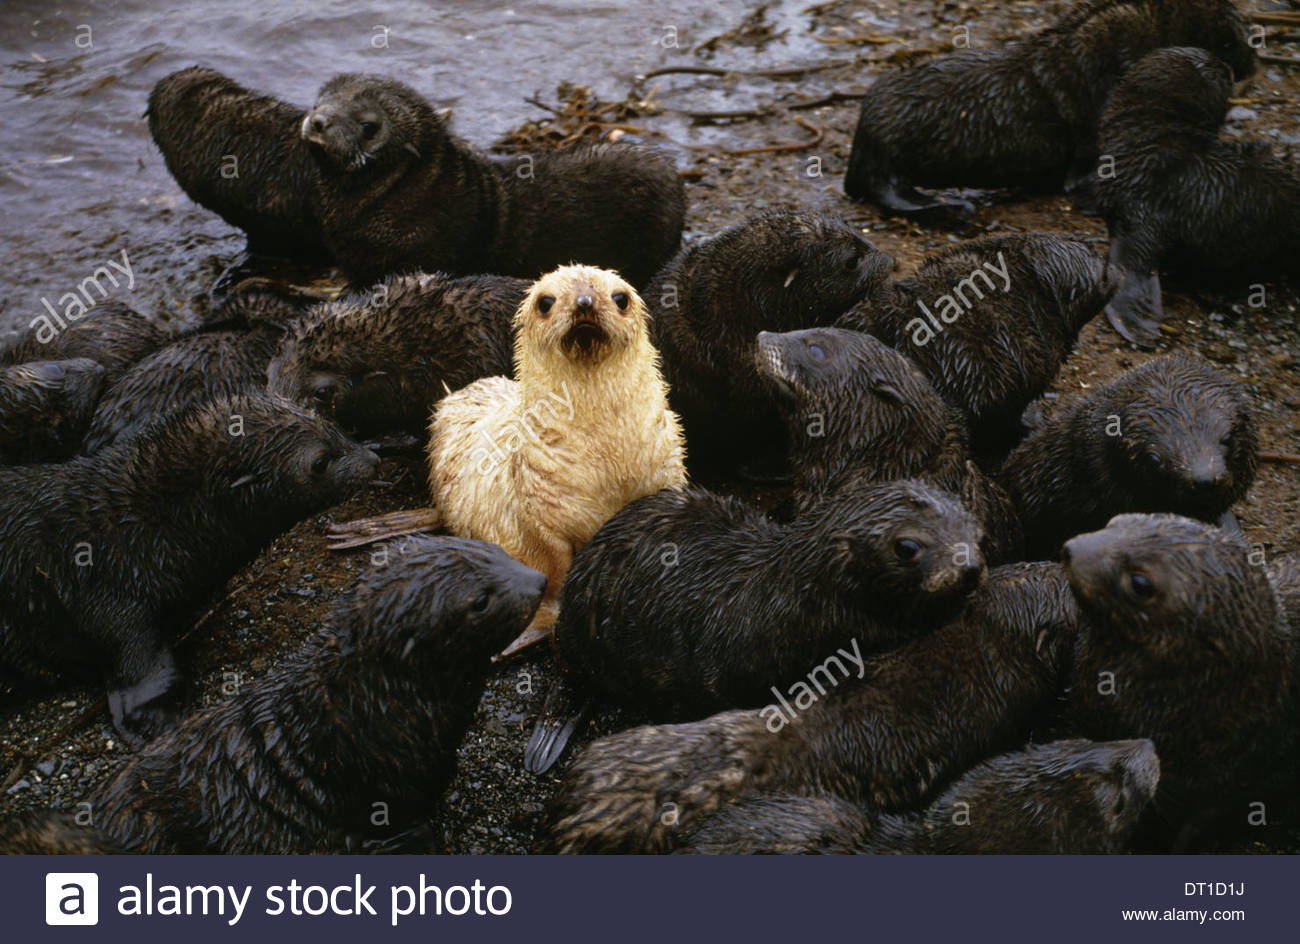 South Georgia Island Antarctic fur seal pups with one blond morph - Stock Image